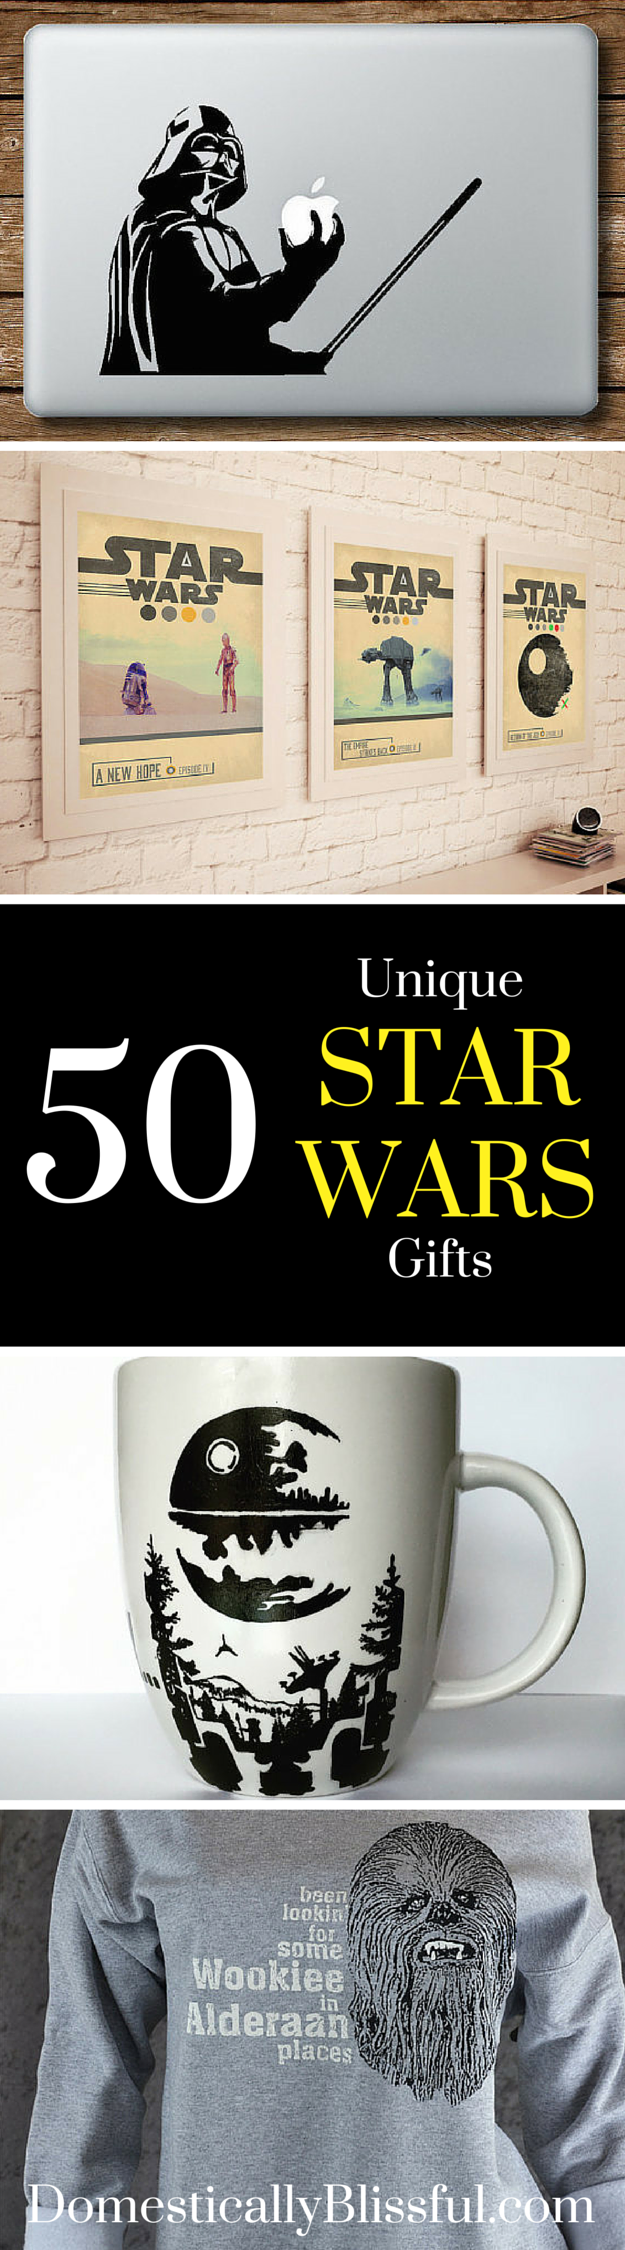 50 unique star wars gifts any star wars fan will love so many great make your gifts special make your life special 50 unique star wars gifts any star wars fan will love so many great gift ideas solutioingenieria Images